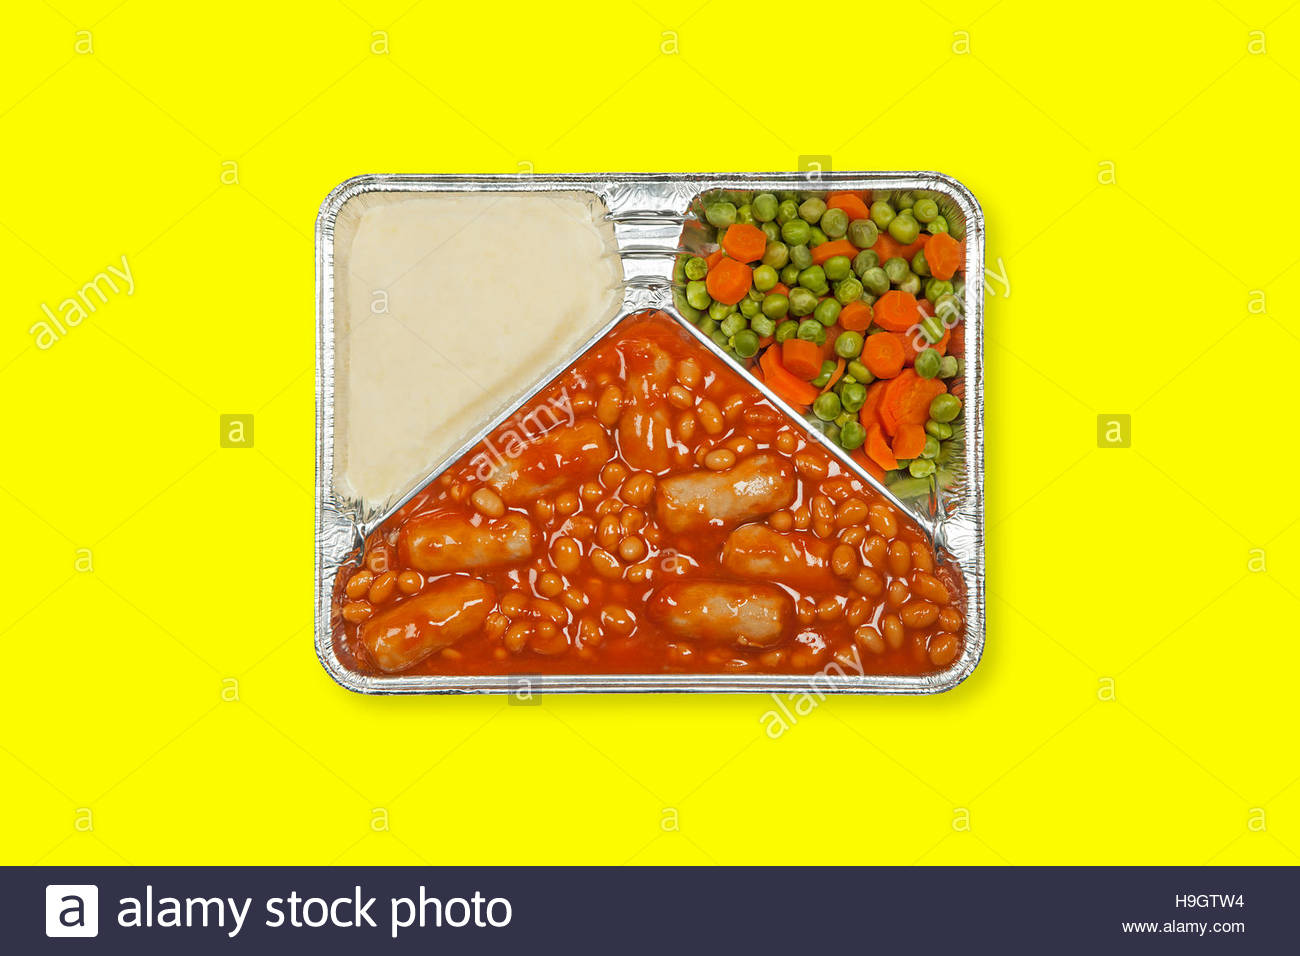 TV dinner tray vintage retro meal aluminum food dish on plain background - Stock Image